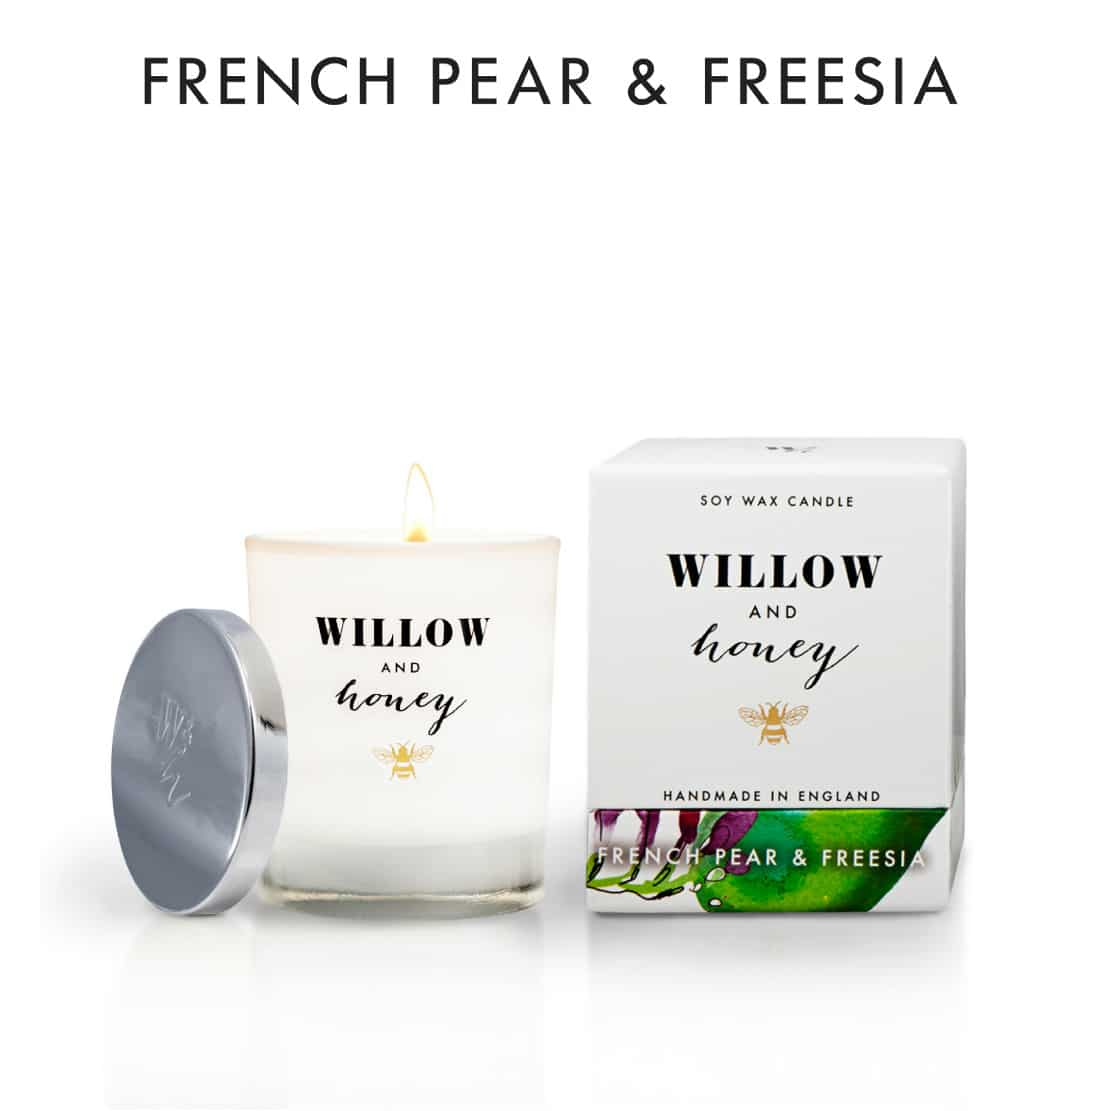 Willow and Honey French Pear and Freesia Candle 220g